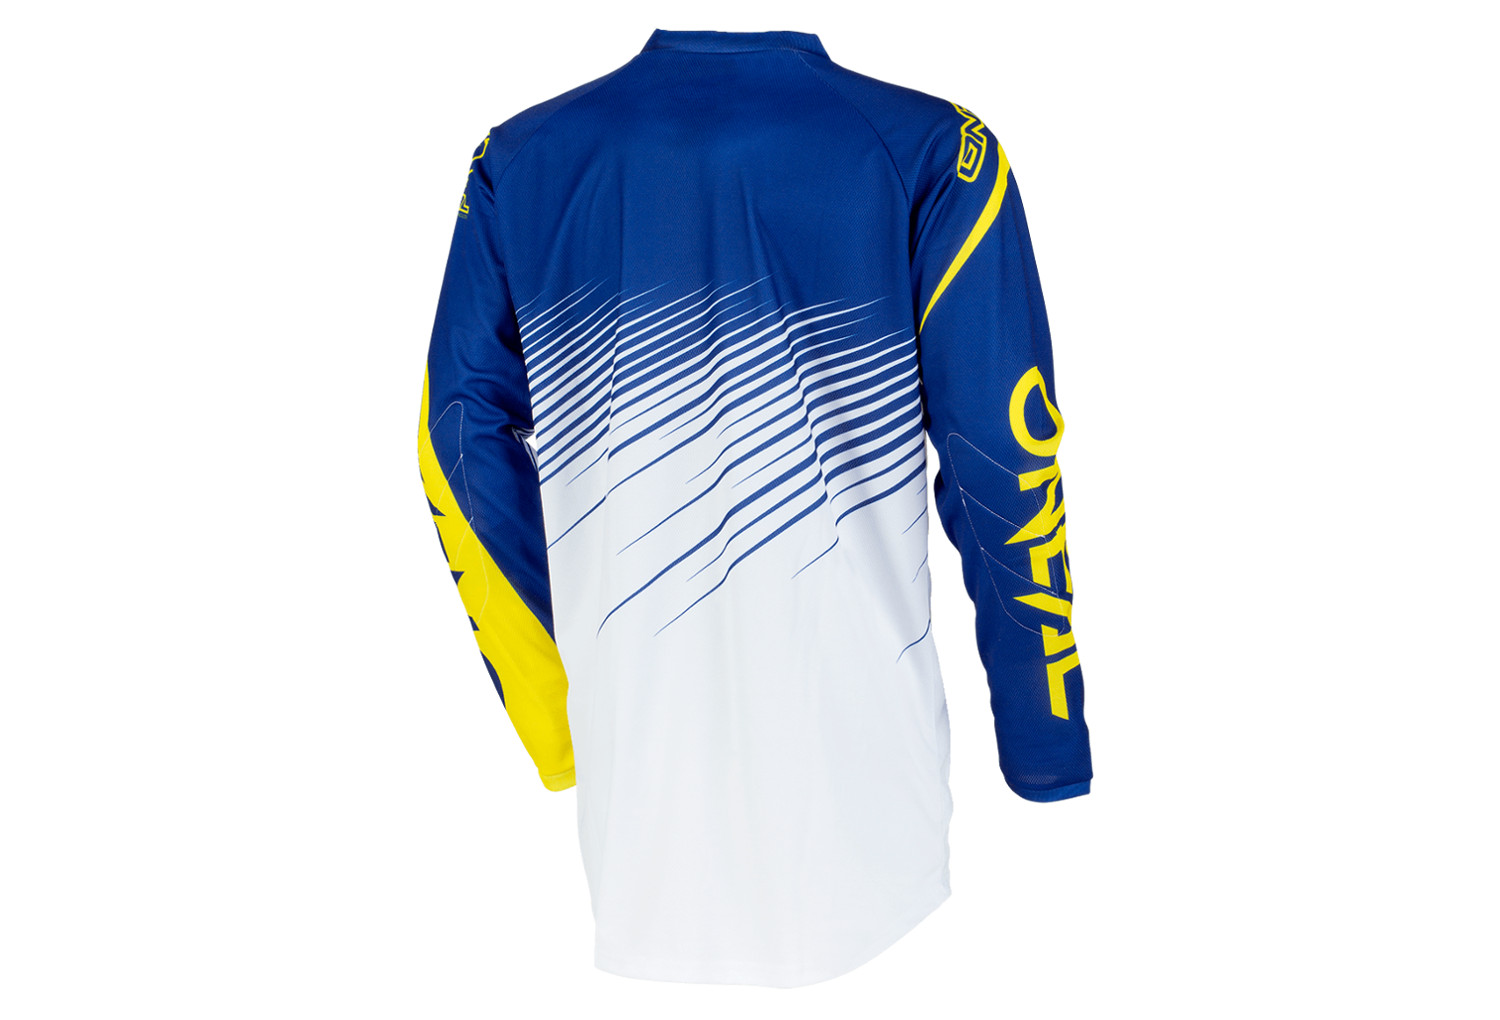 61675631e Oneal Element Racewear Youth Long Sleeves Jersey Yellow Blue ...